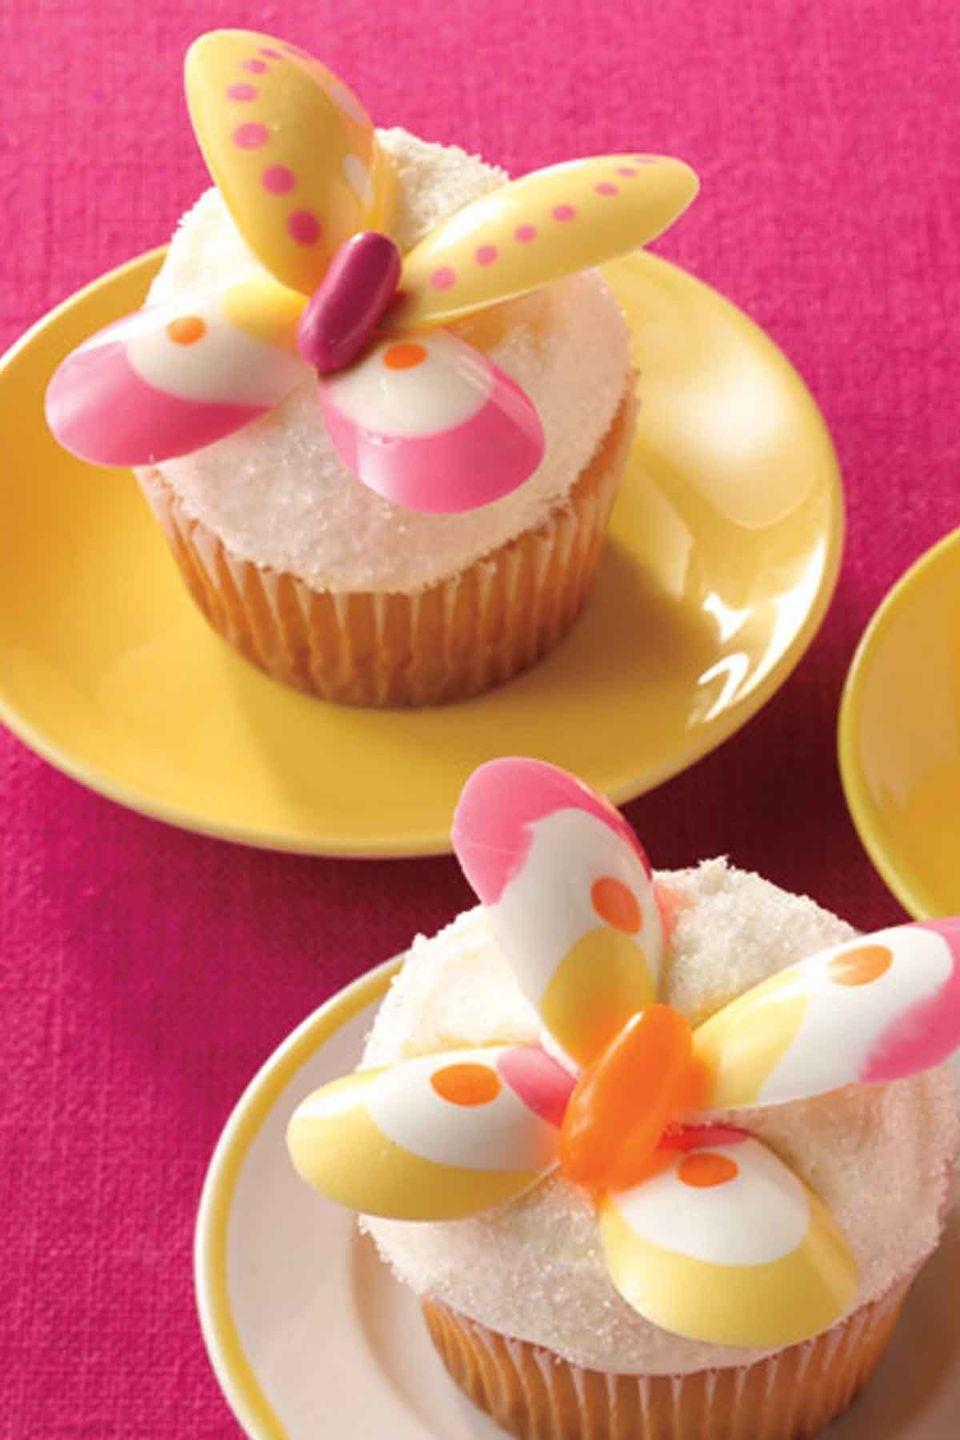 """<p>These bright, spring-inspired butterfly cupcakes will bring a pop of color and flavor to your dessert table. </p><p><strong><em><a href=""""https://www.womansday.com/food-recipes/food-drinks/recipes/a11266/lemon-butterfly-cakes-recipe/"""" rel=""""nofollow noopener"""" target=""""_blank"""" data-ylk=""""slk:Get the Lemon Butterfly Cakes recipe."""" class=""""link rapid-noclick-resp"""">Get the Lemon Butterfly Cakes recipe. </a></em></strong></p>"""